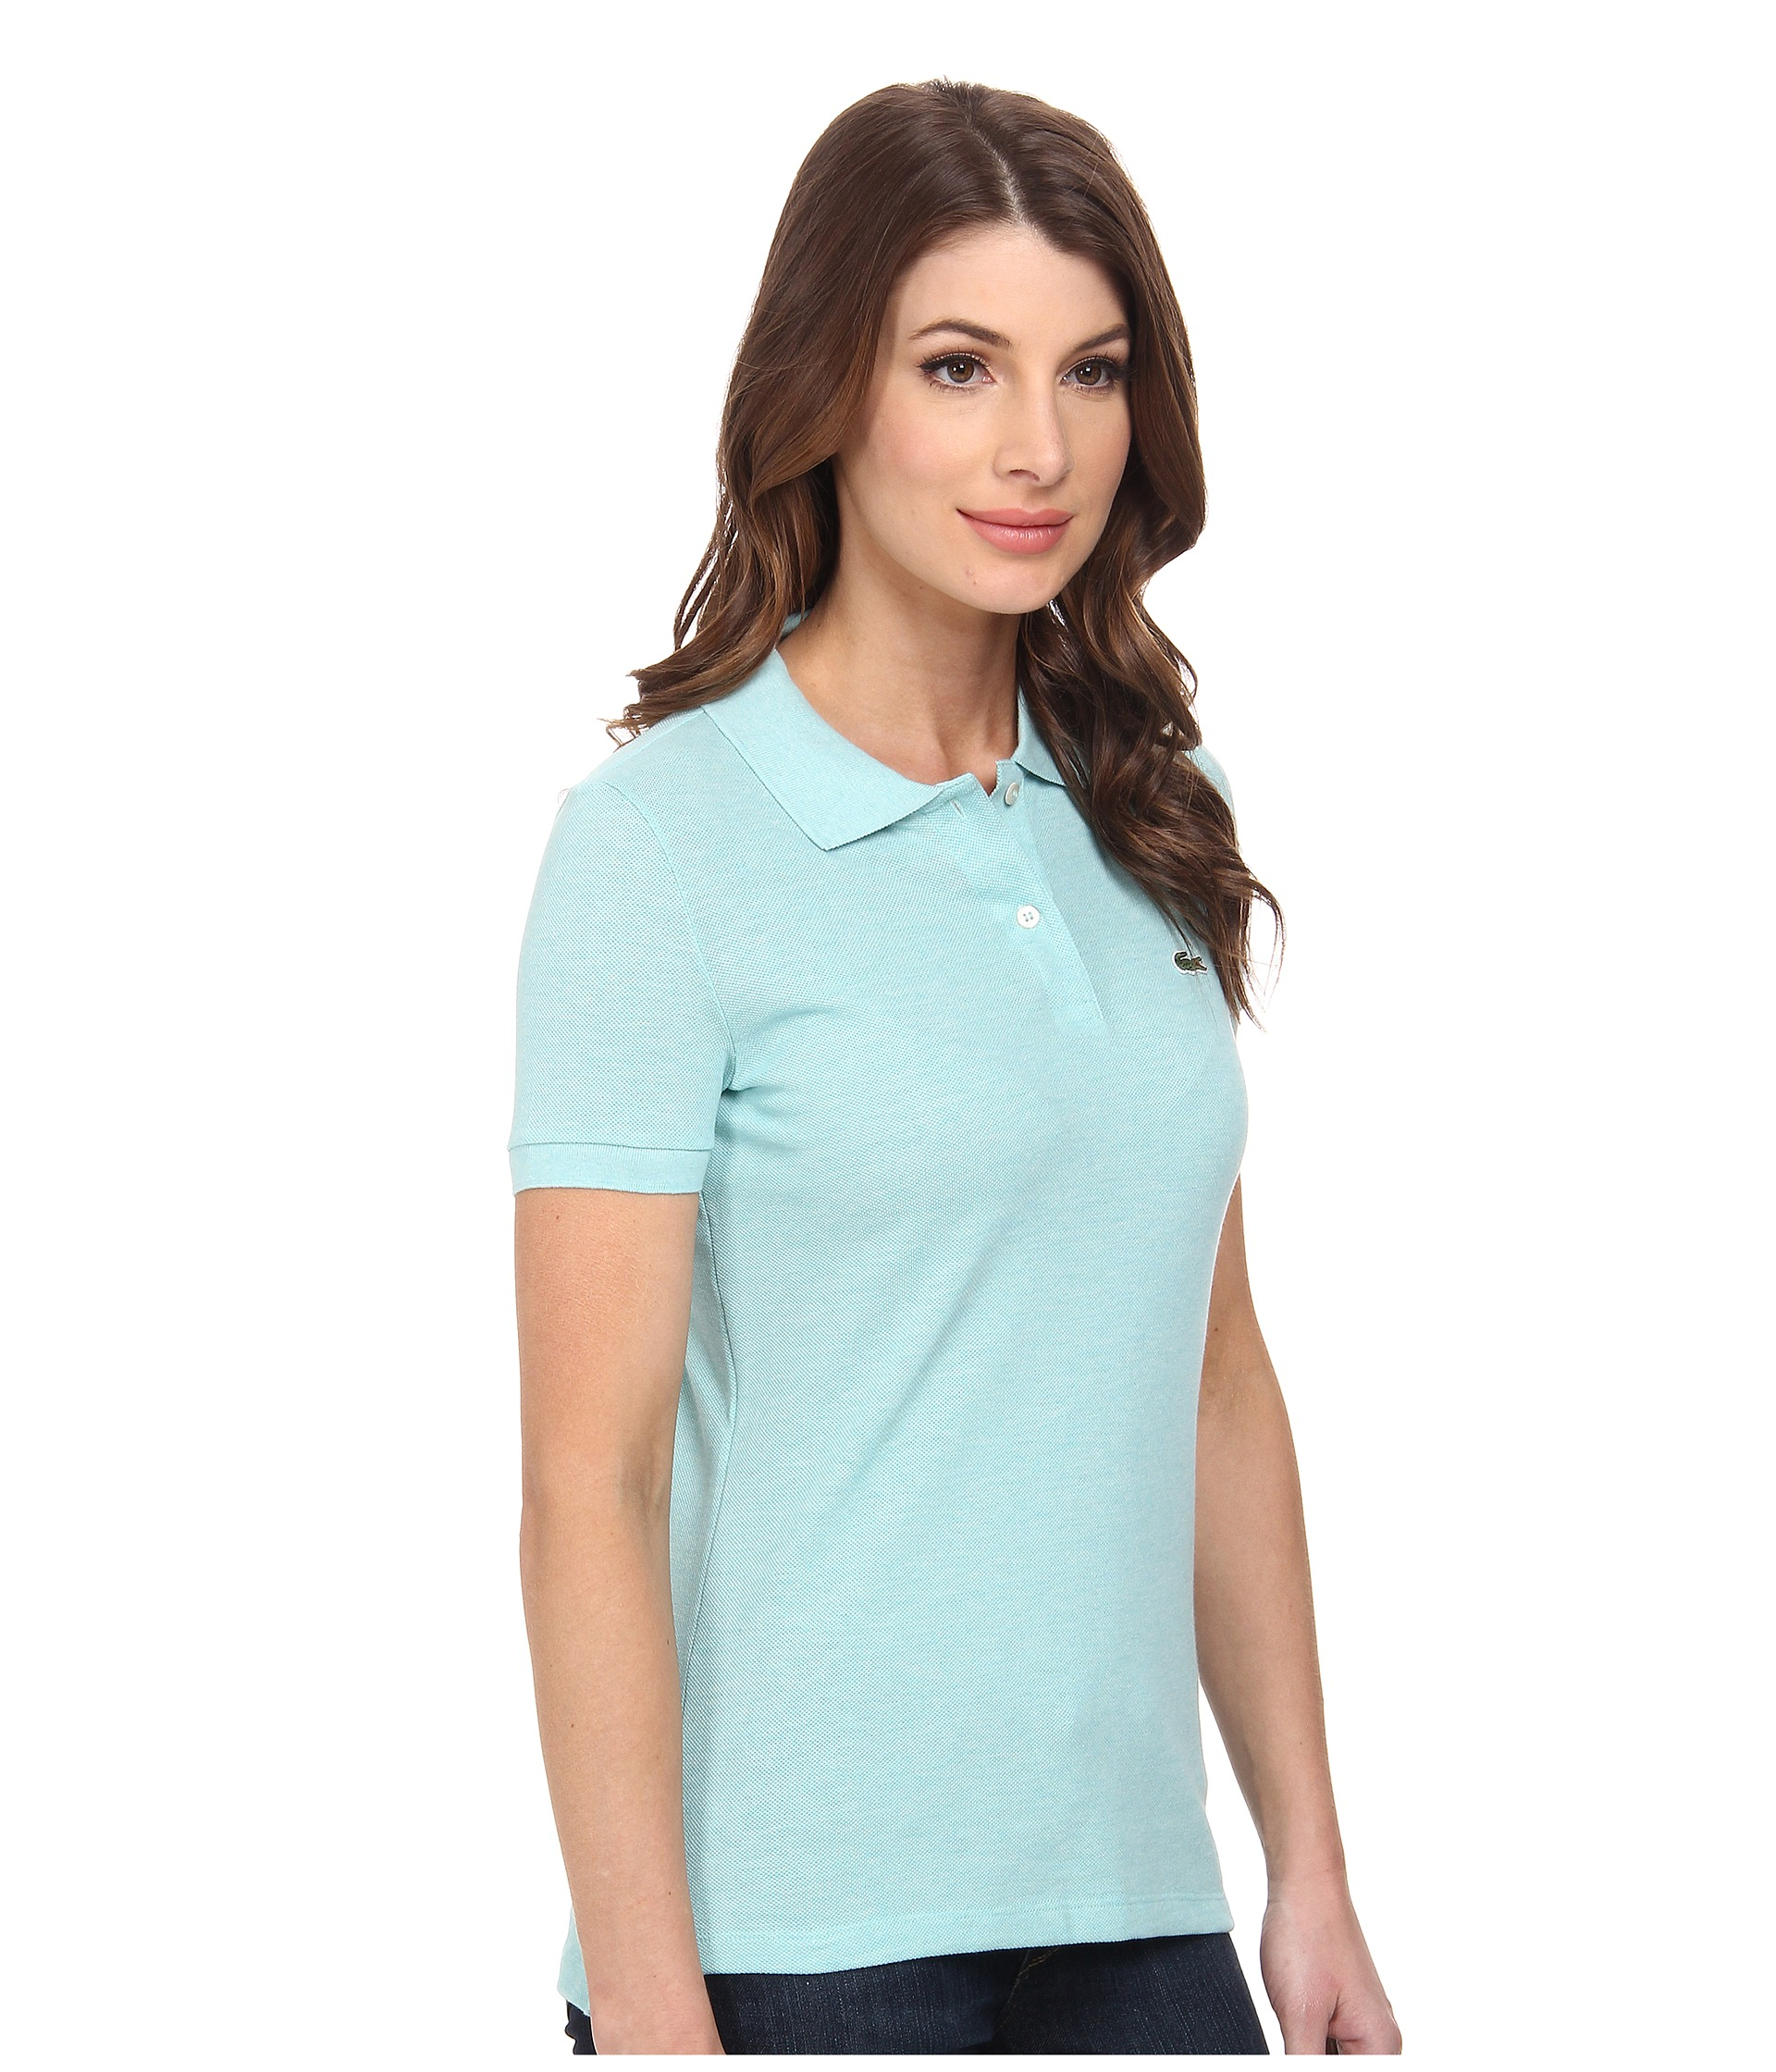 Lyst Lacoste Short Sleeve Classic Fit Pique Polo Shirt